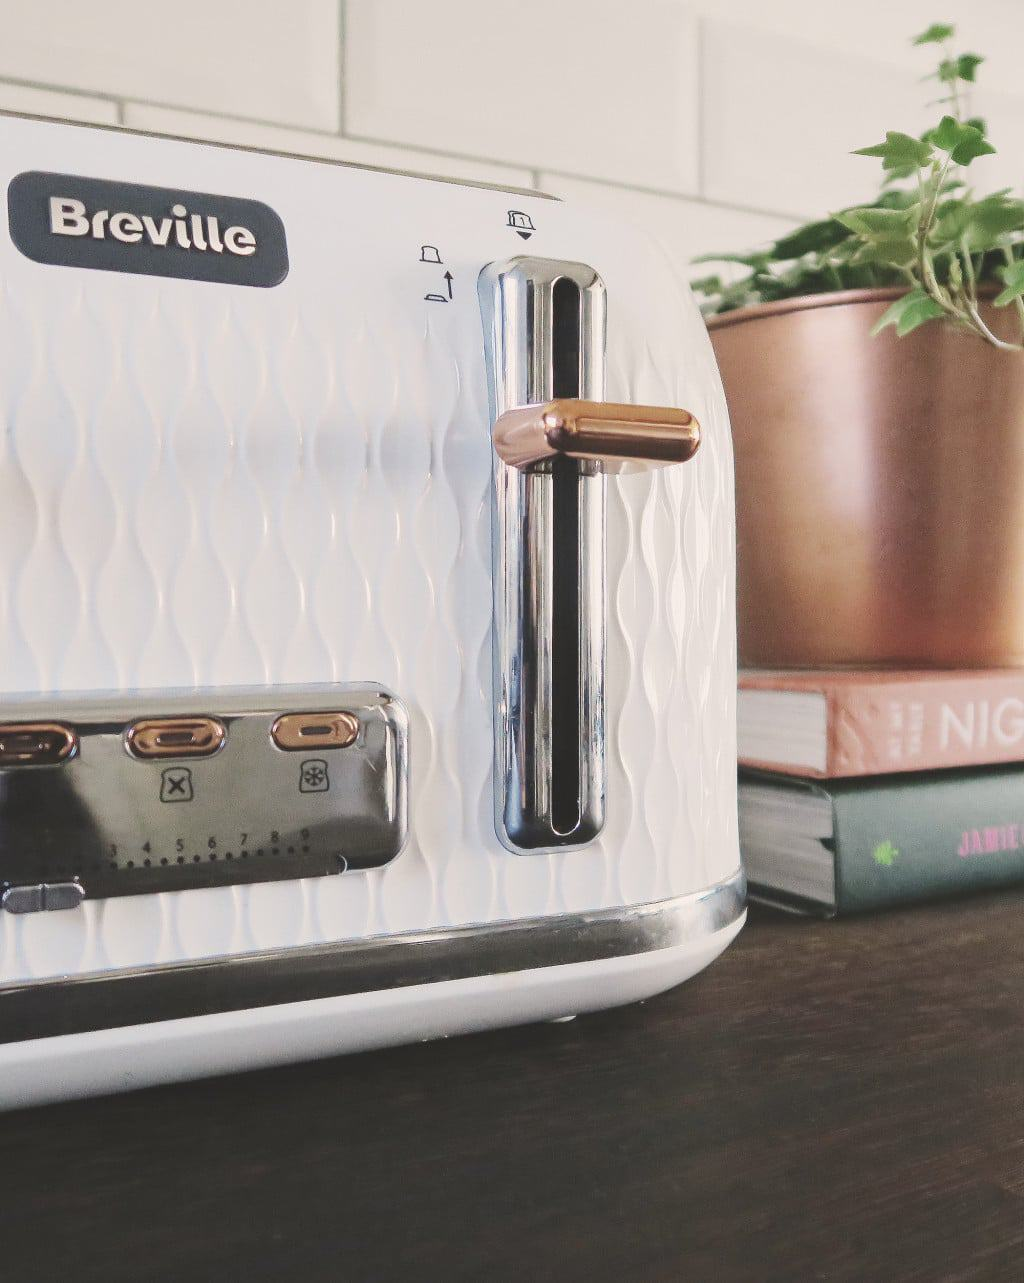 the Breville Curve Toaster — rose gold accents